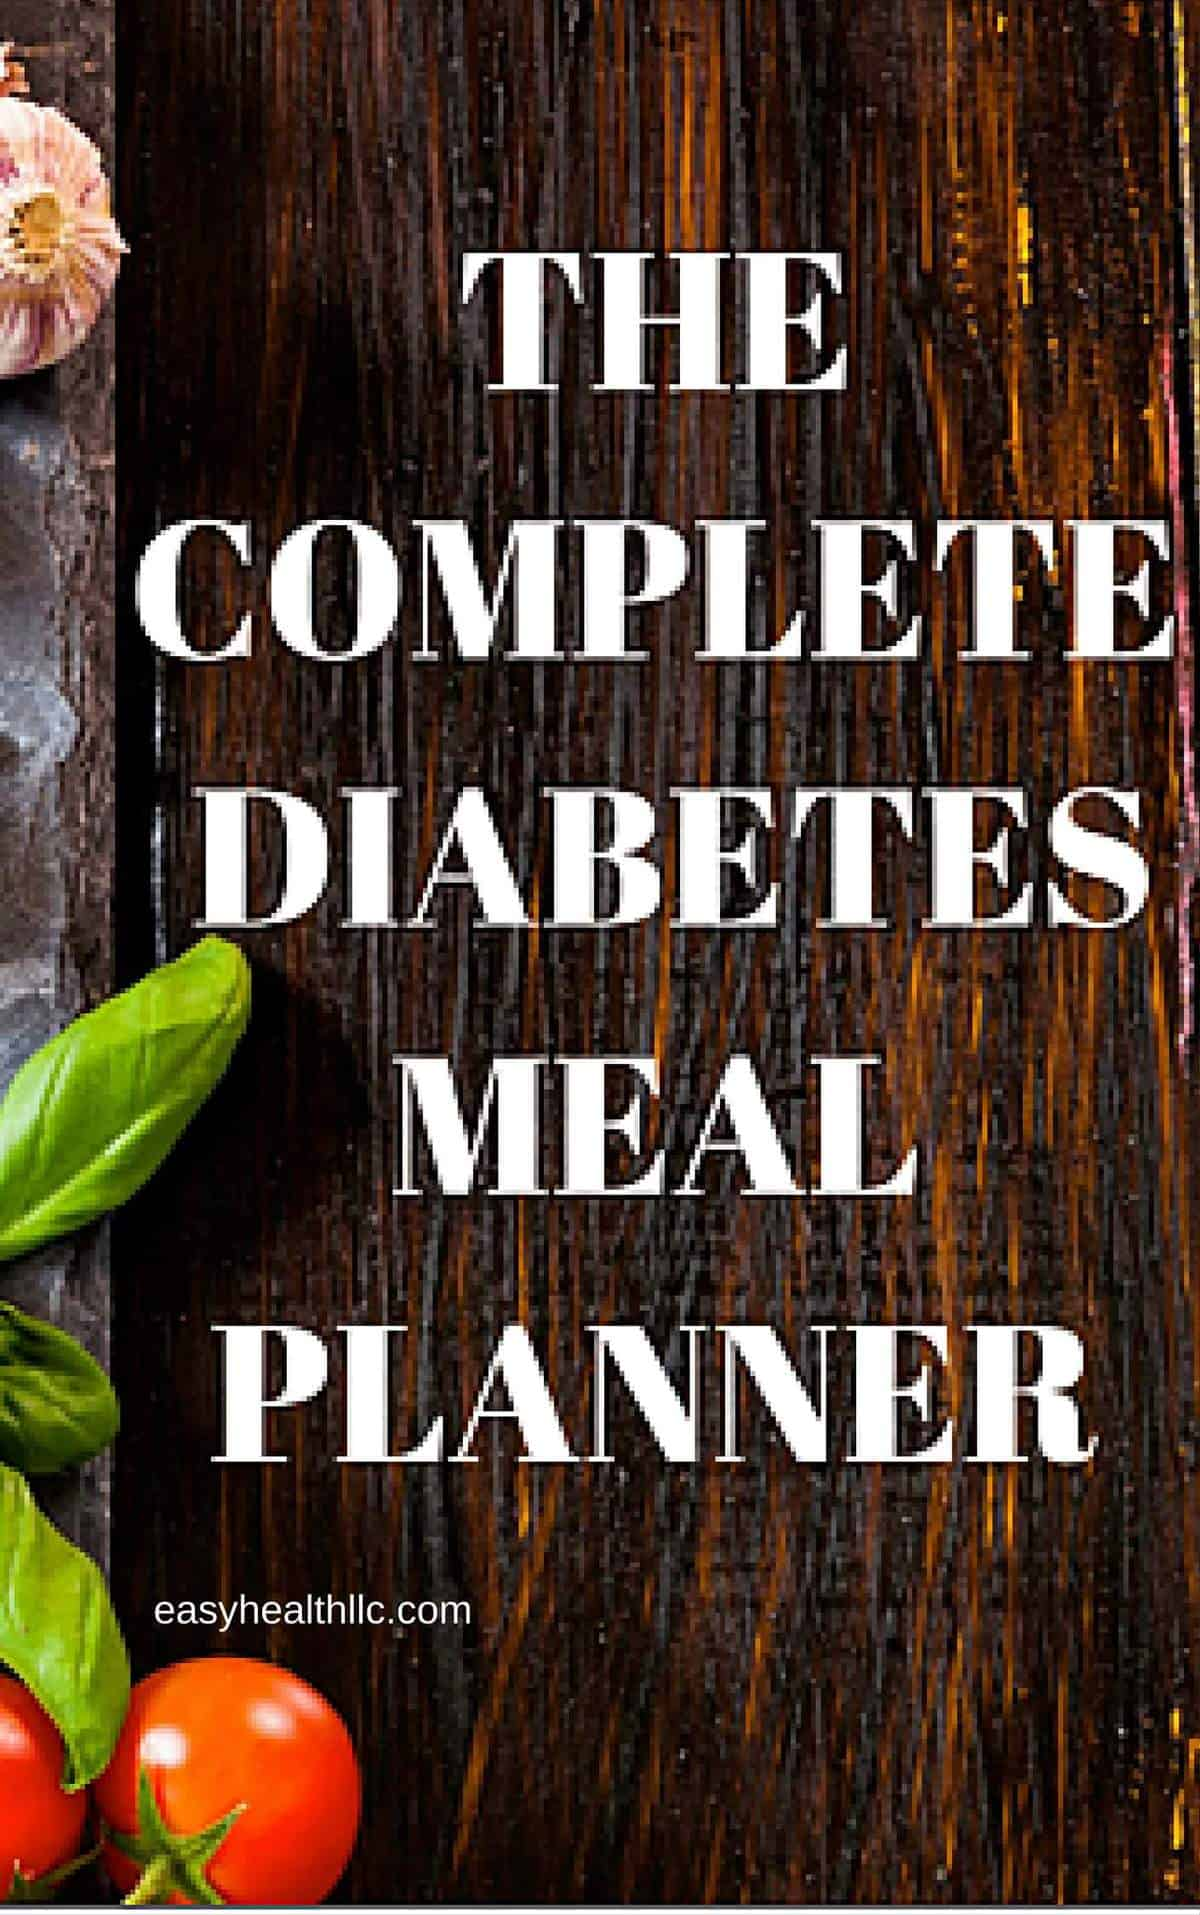 The Complete Diabetes Meal Planner ebook contains dietitian-diabetes educator approved sample menus, meal plans and recipes complete with nutritional information. Helps take the hassle out of eating right for diabetes. Get yours today and take charge of your diet! #diabetesdiet #mealplans